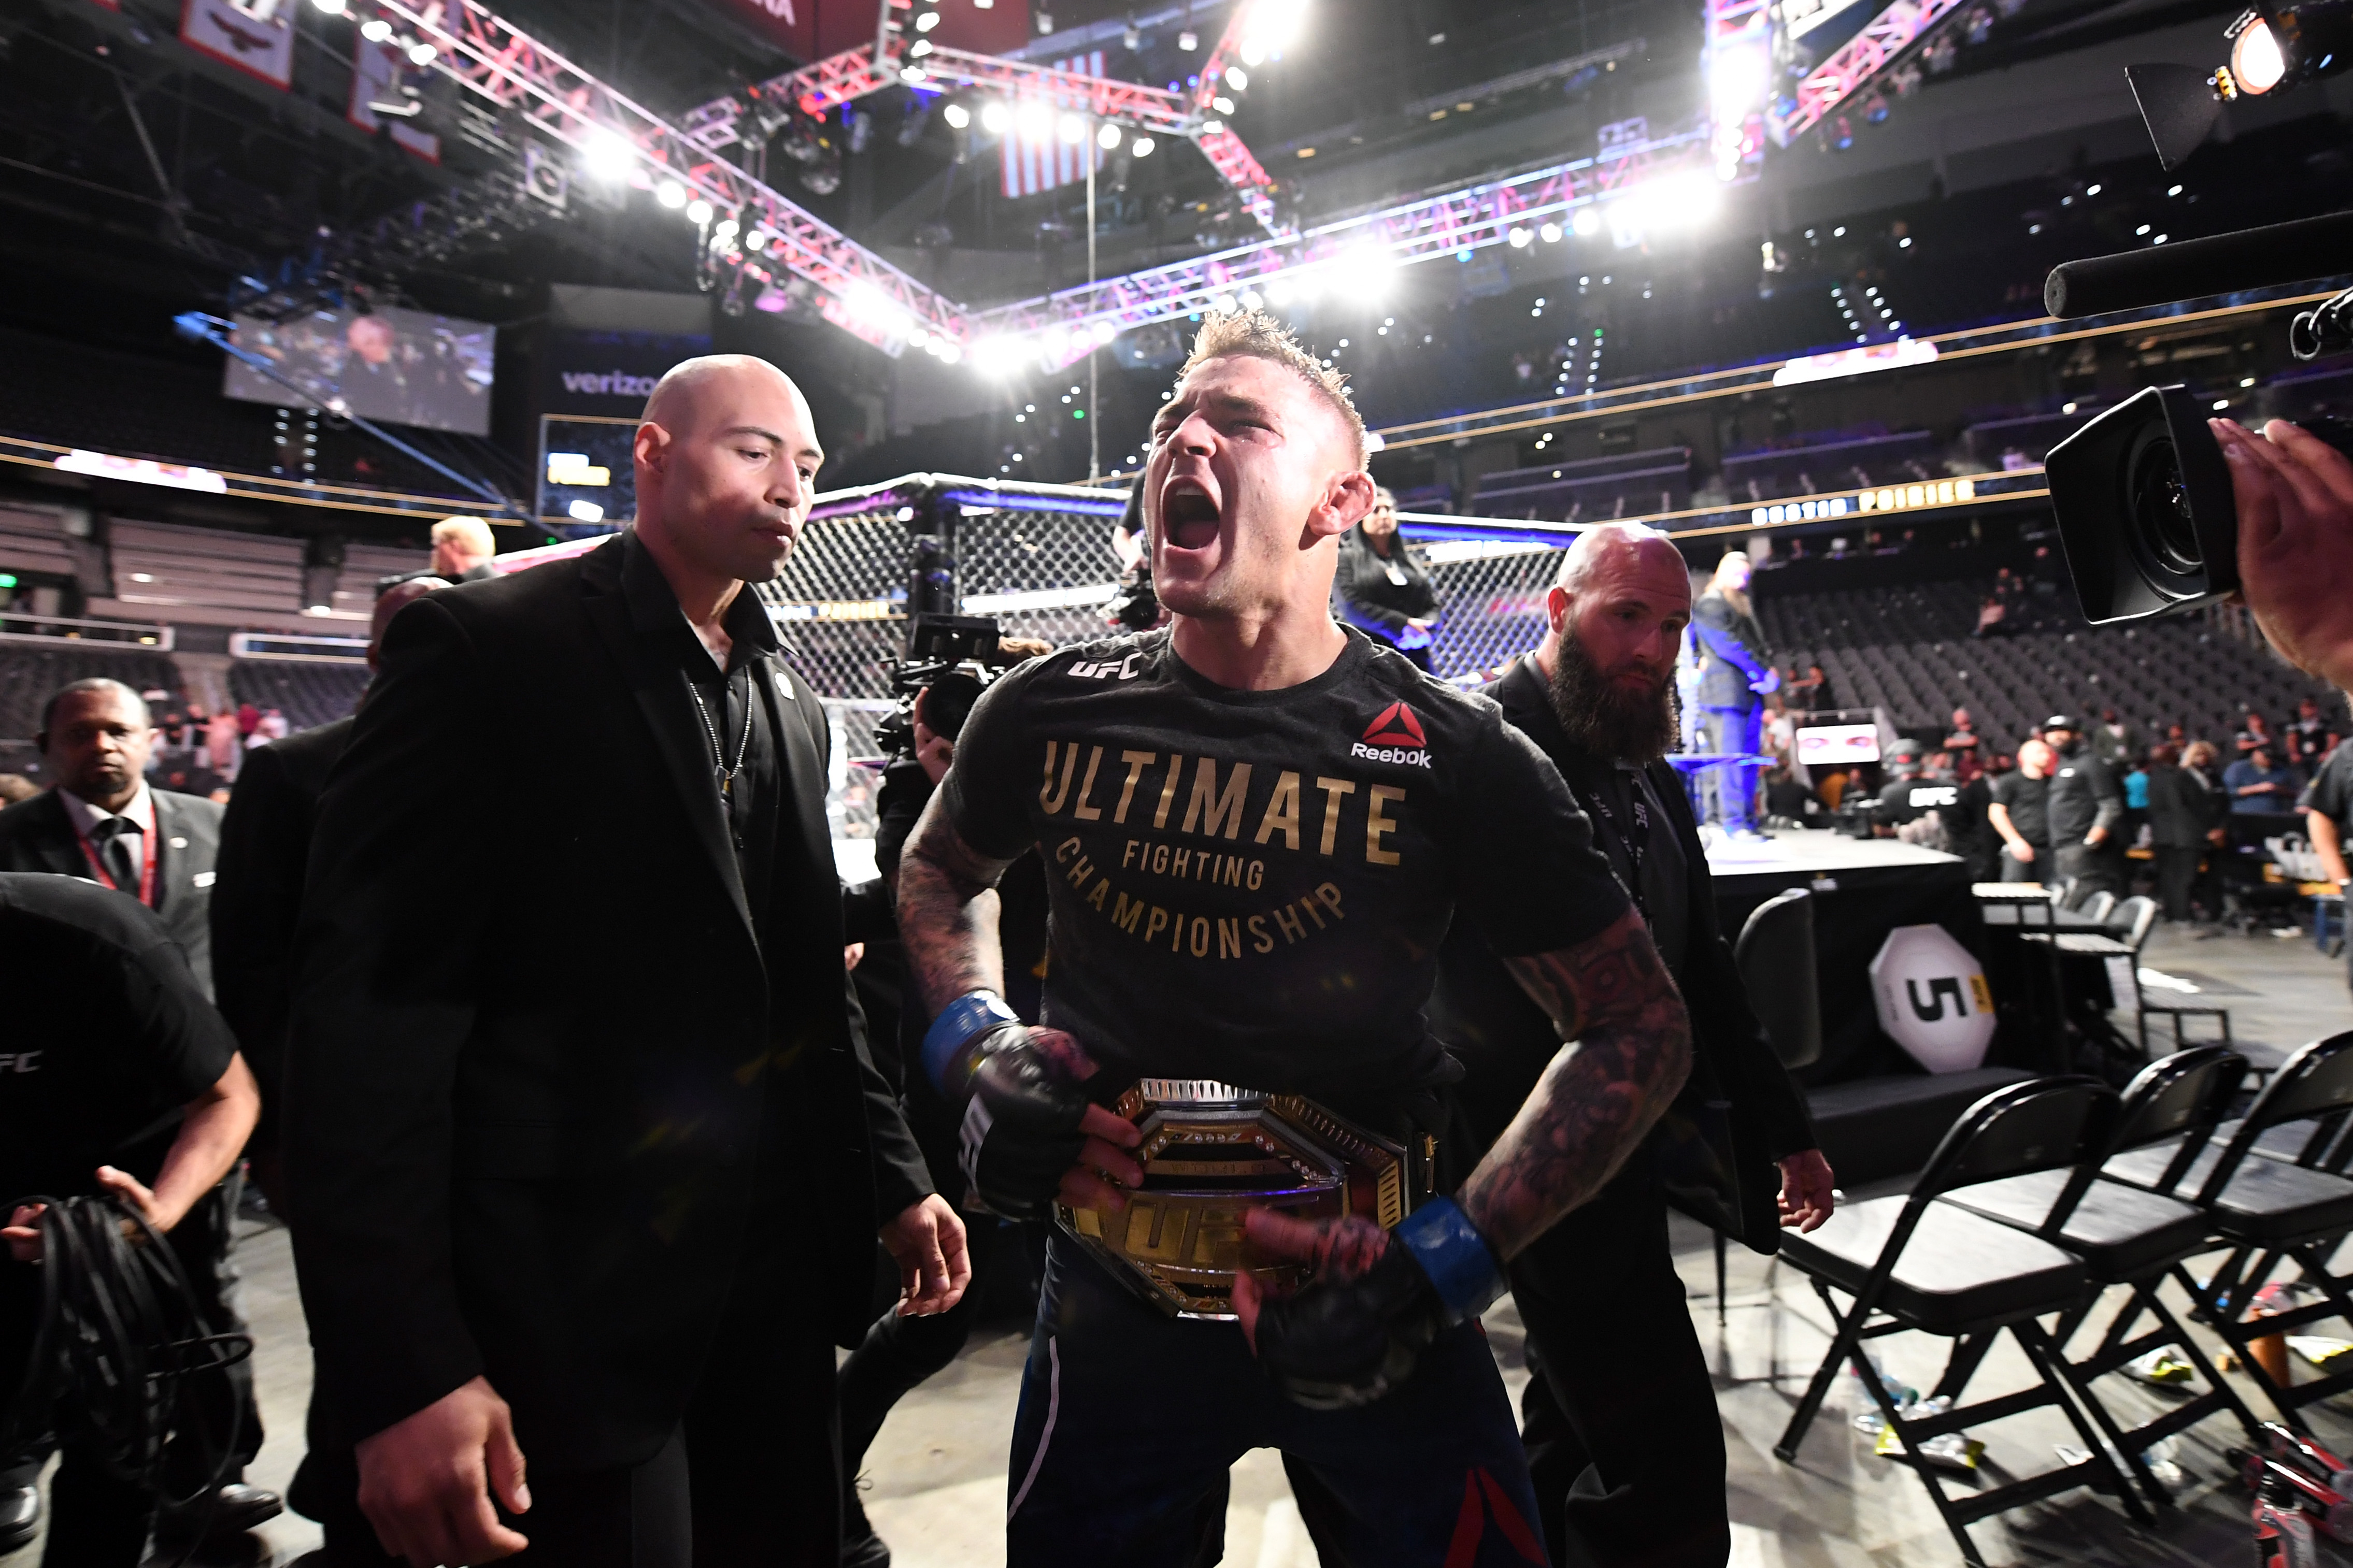 ATLANTA, GA - APRIL 13: Dustin Poirier reacts after defeating Max Holloway in their interim lightweight championship bout during the UFC 236 event at State Farm Arena on April 13, 2019 in Atlanta, Georgia. (Photo by Josh Hedges/Zuffa LLC/Zuffa LLC via Getty Images)